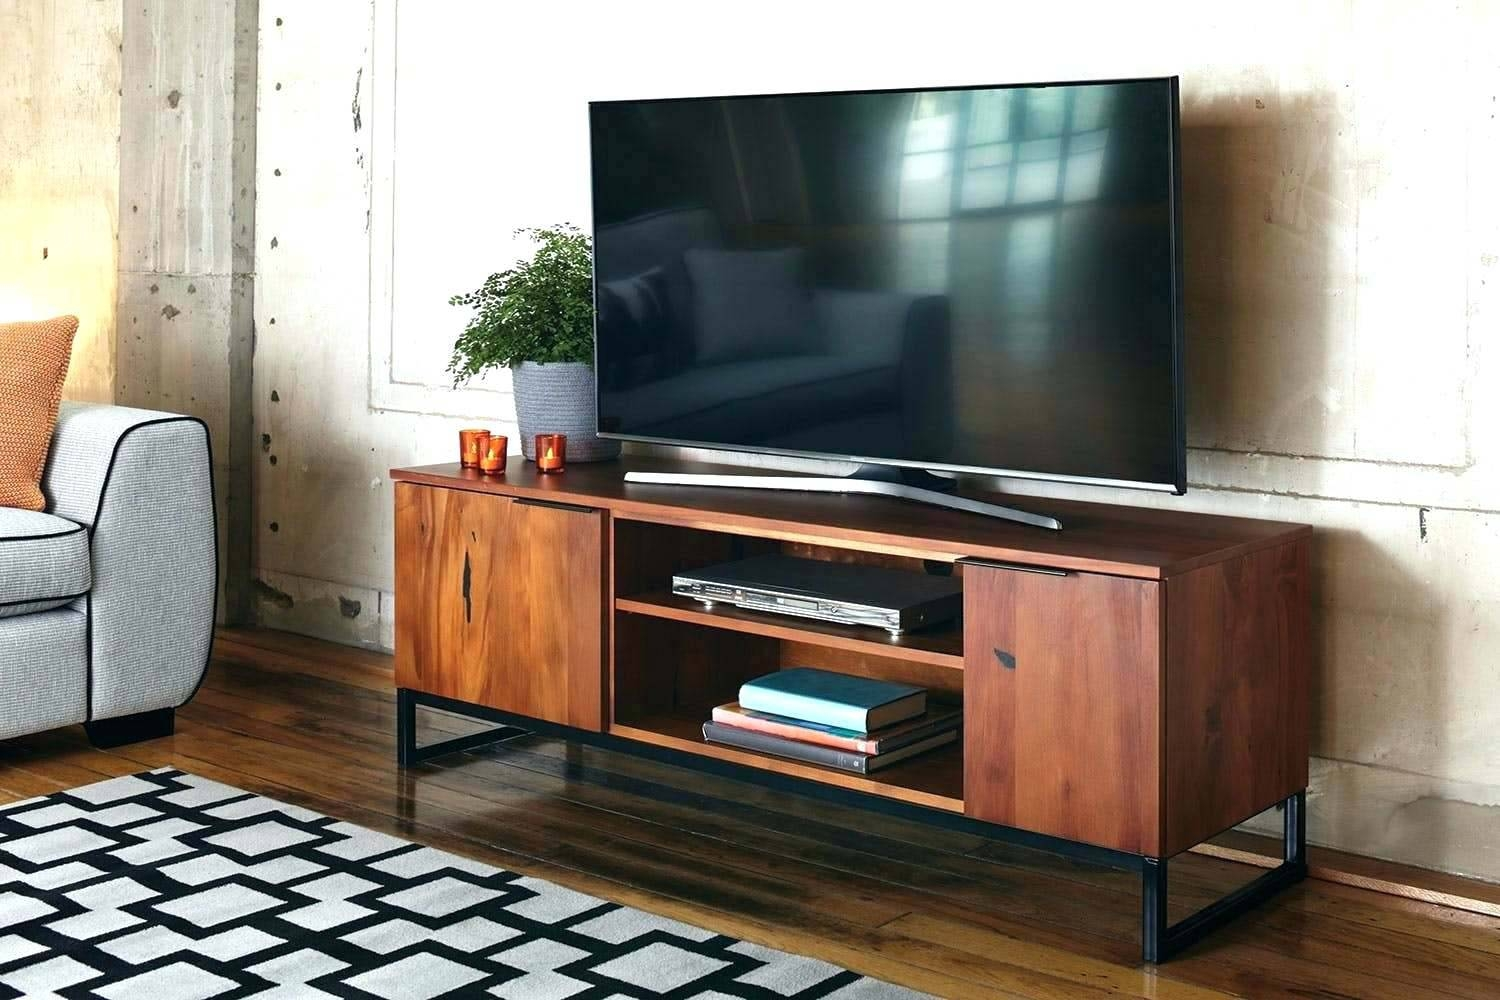 Tv Stand : 25 Chic Vertica Oak Low Contemporary Tv Stand Back pertaining to Honey Oak Tv Stands (Image 9 of 15)